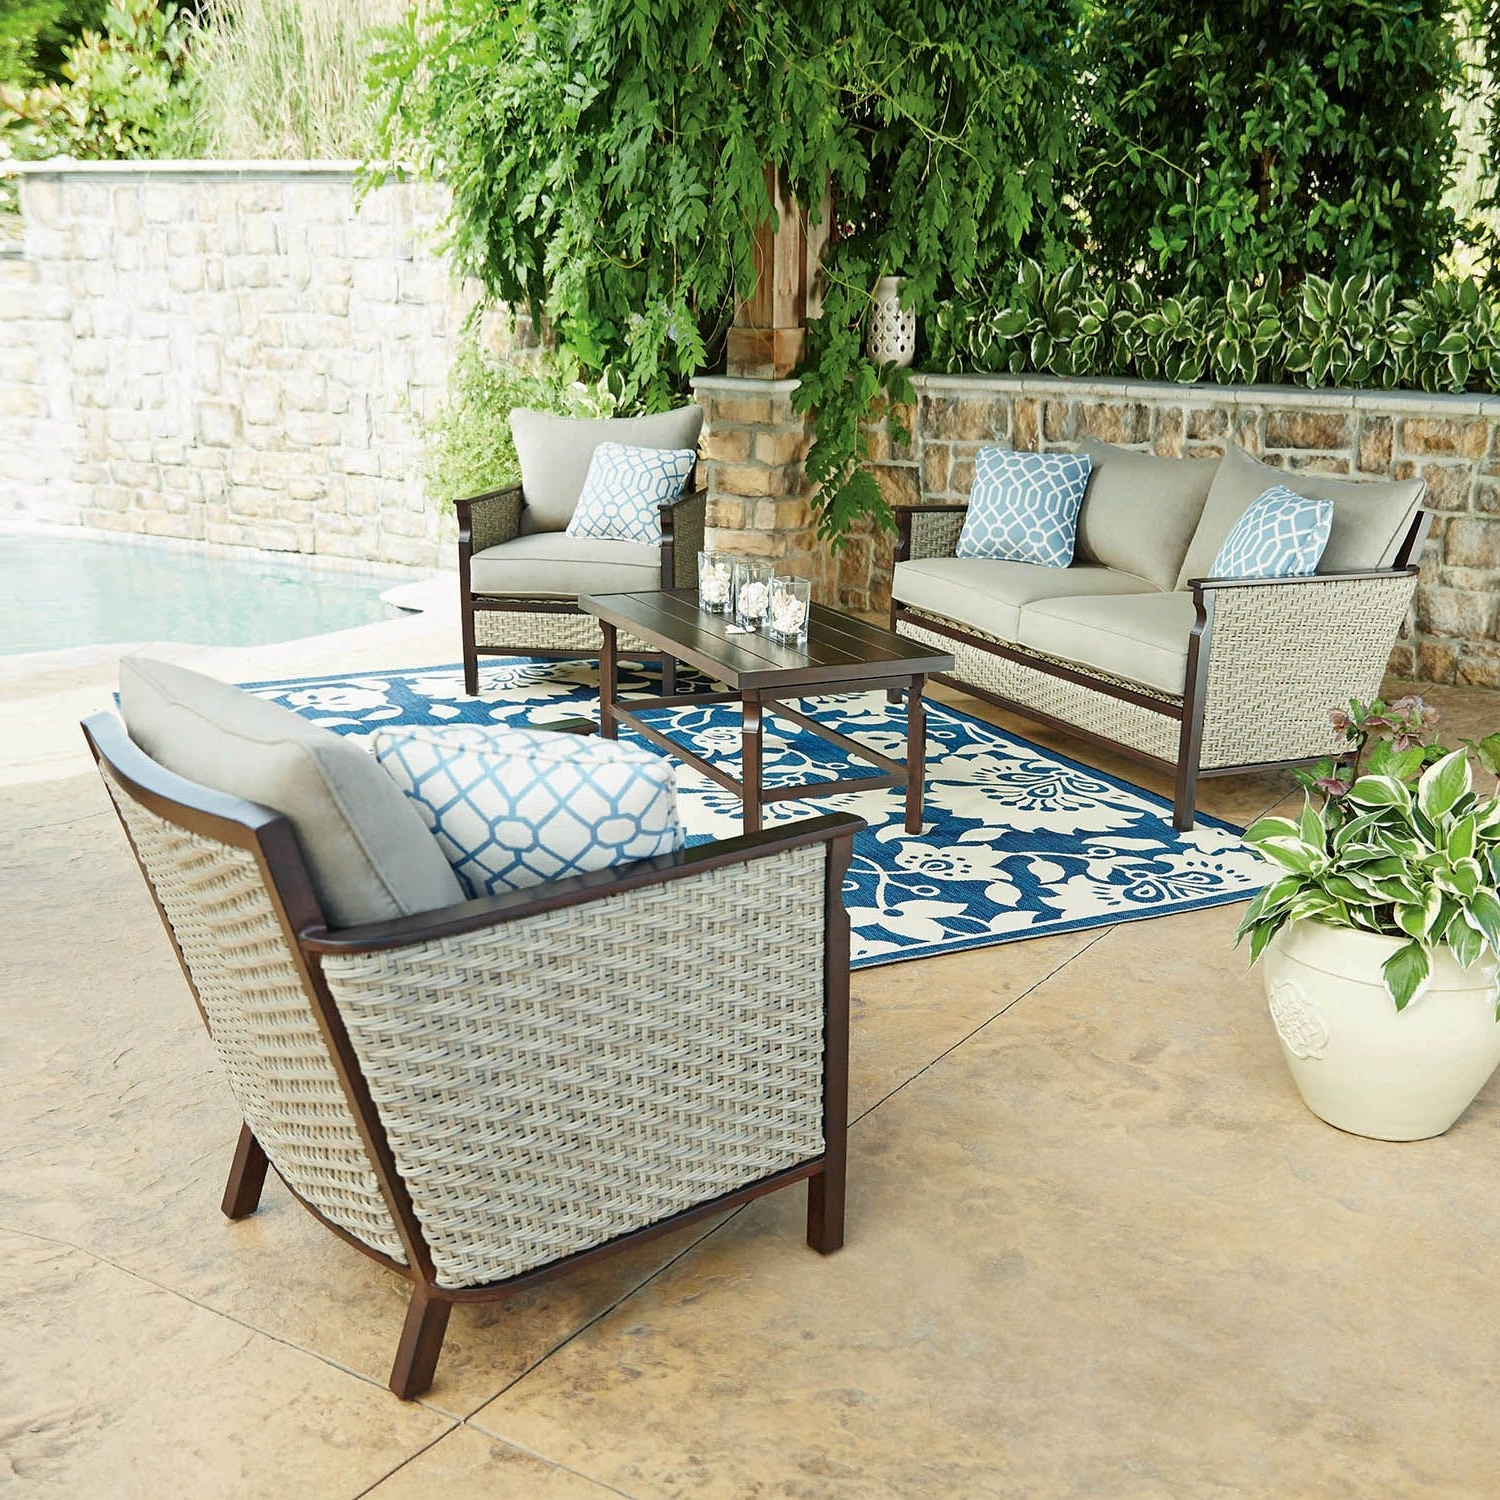 Lounge Chair Ideas ~ Lounge Chair Ideas Sams Club Pool Chairs Patio With Regard To Latest Patio Conversation Sets At Sam's Club (View 6 of 15)